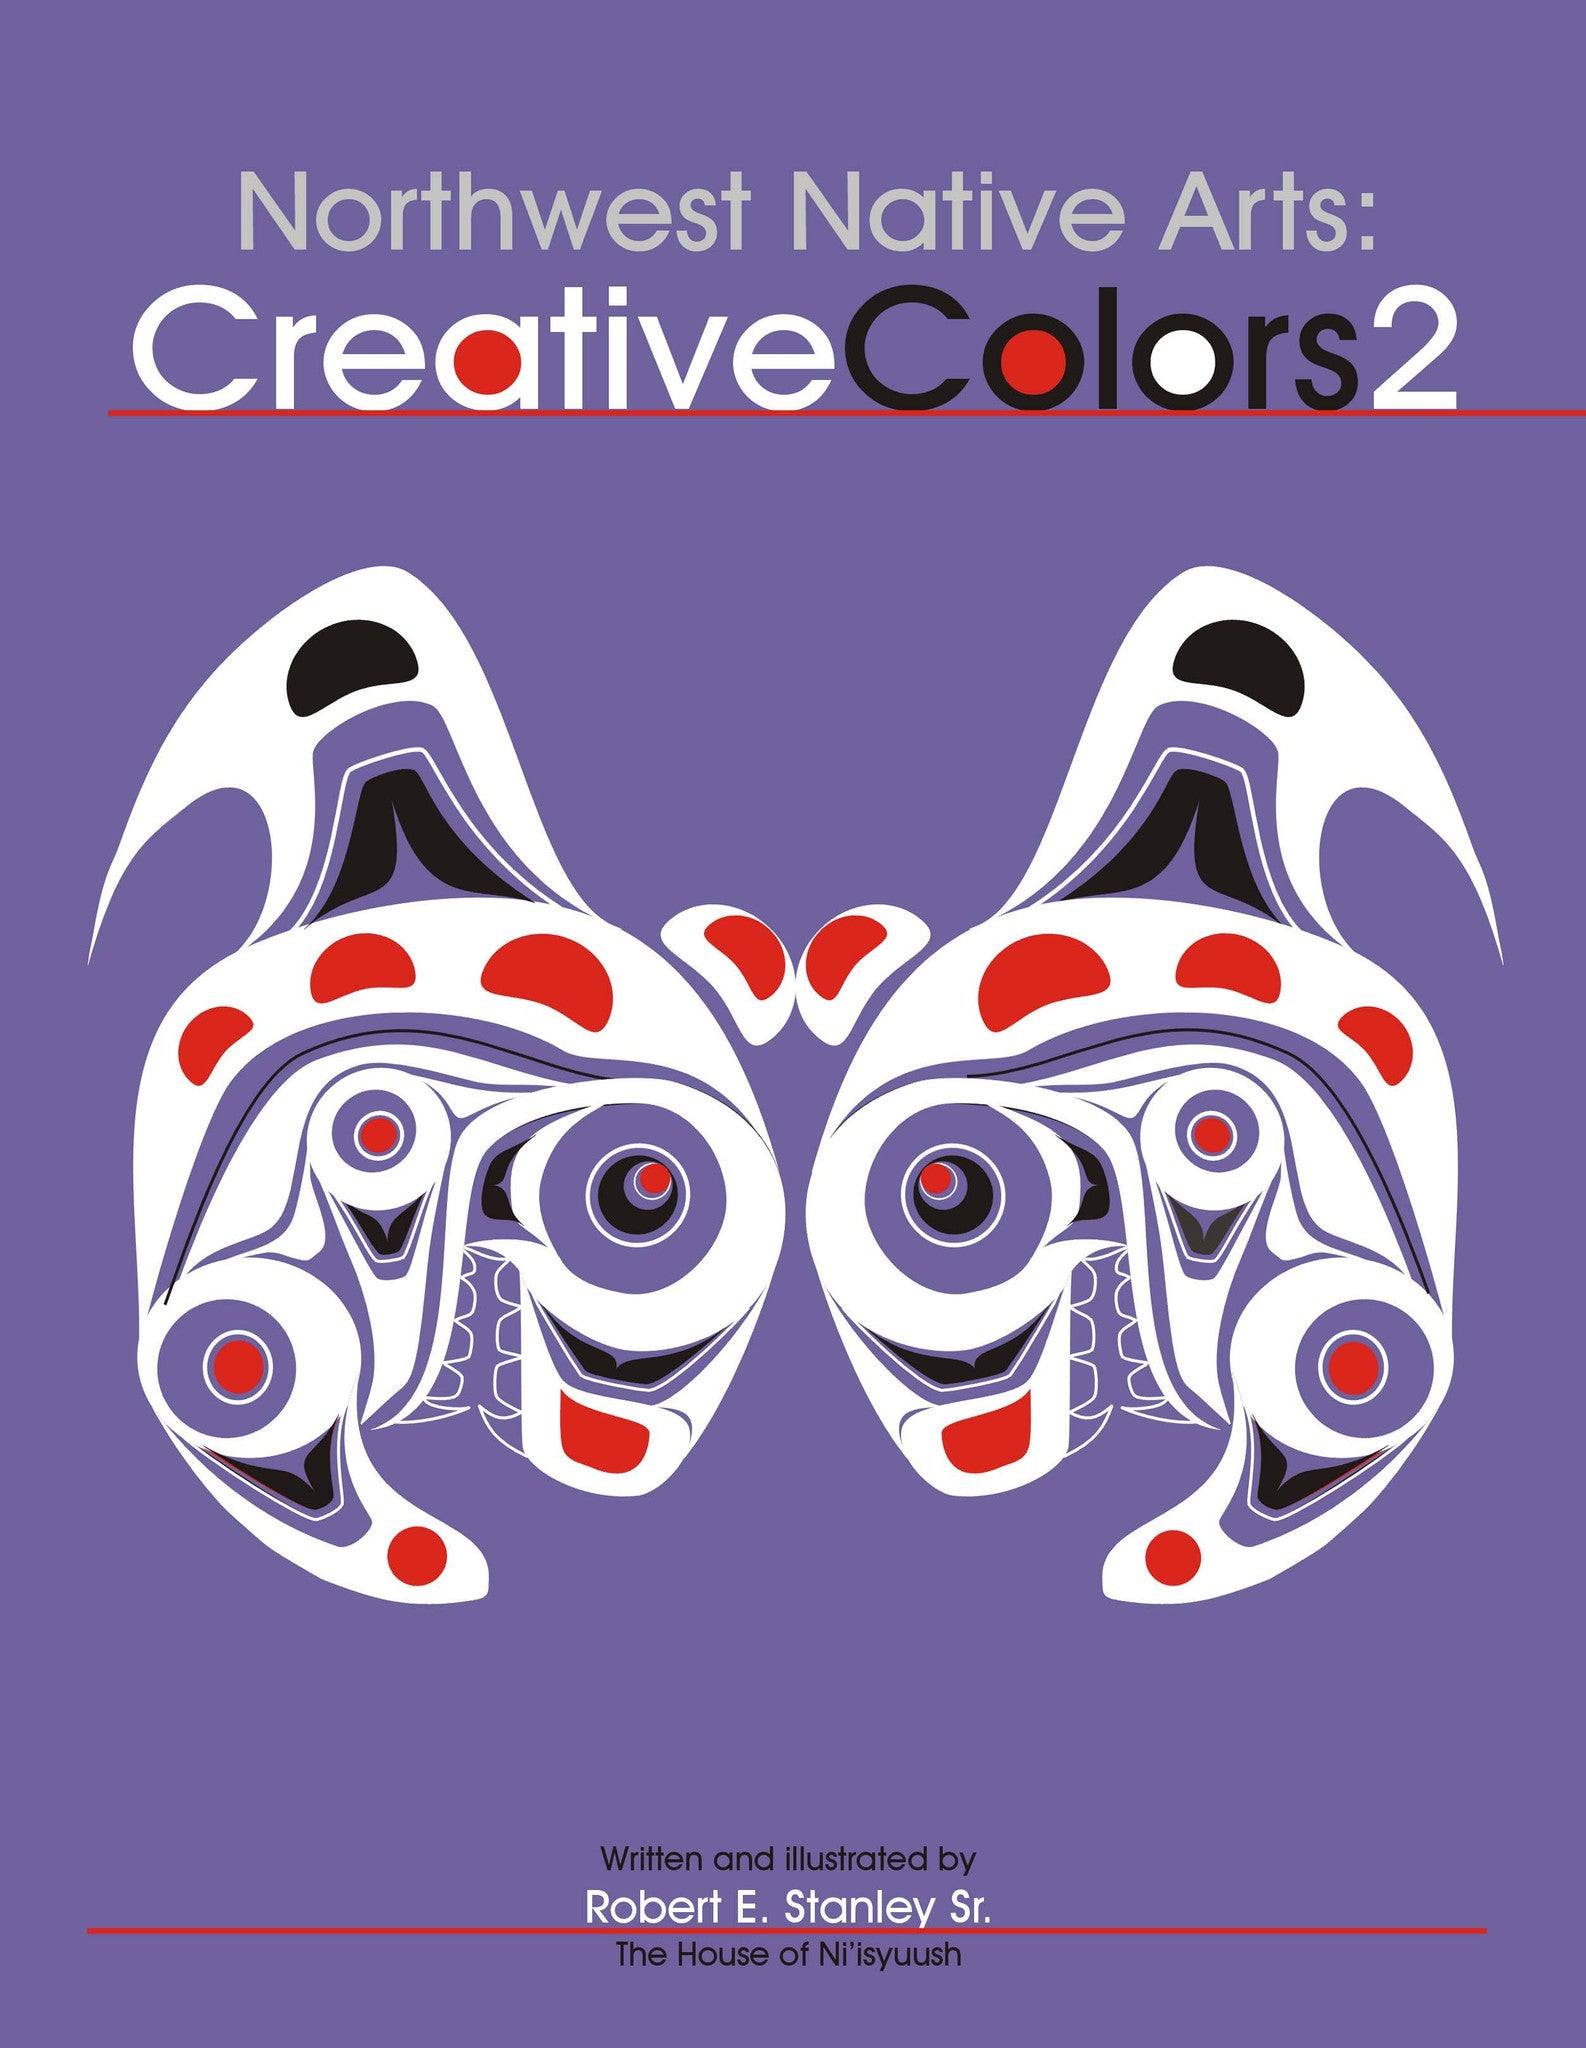 Northwest Native Arts: Creative Colors 2